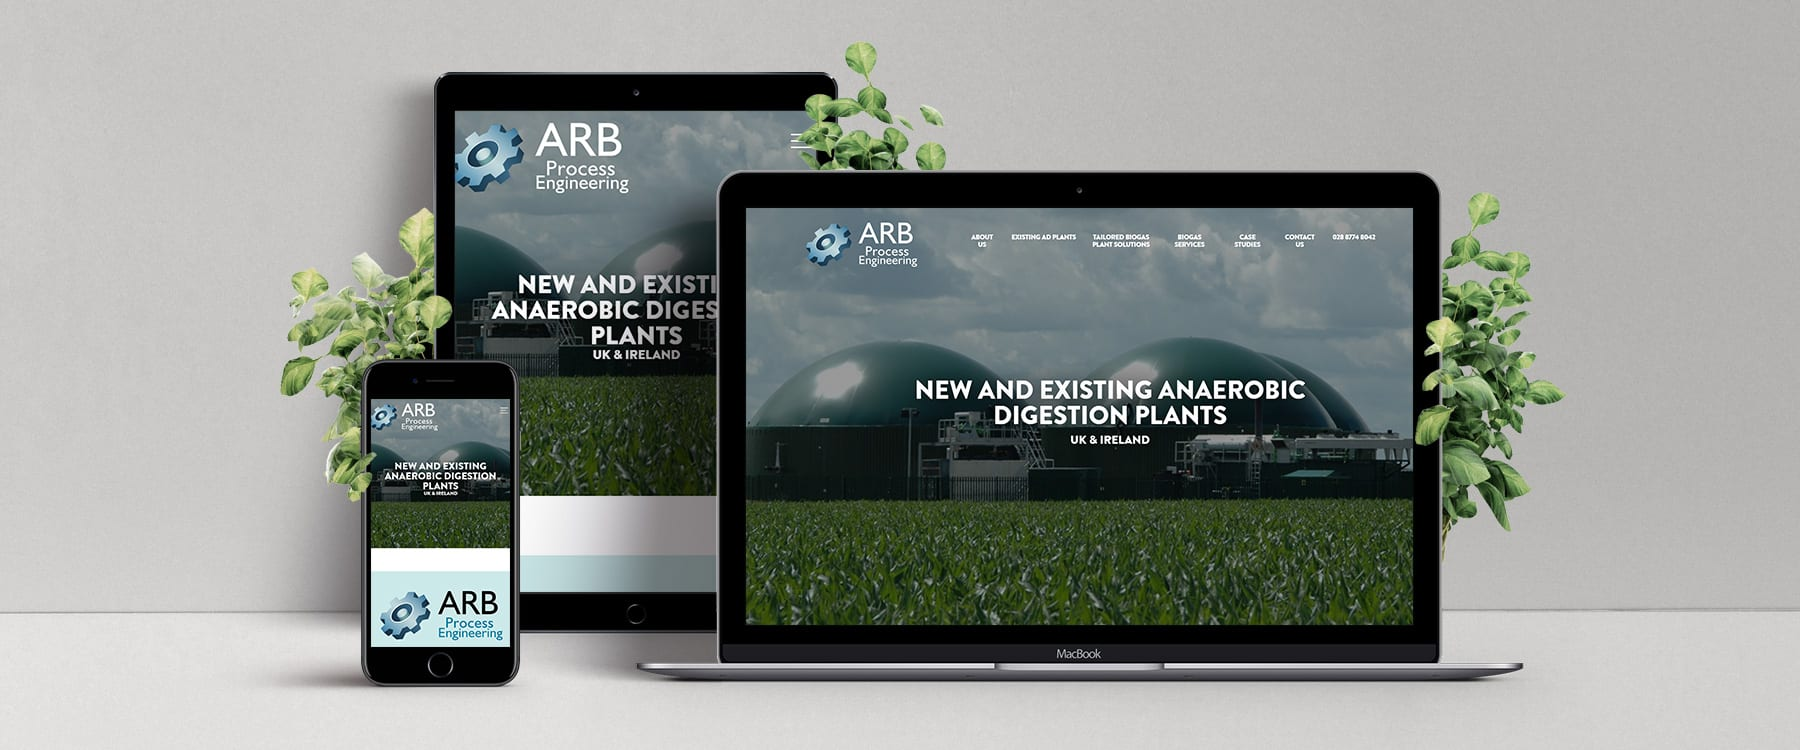 ARB Process Engineering Launch New Brochure Website Image